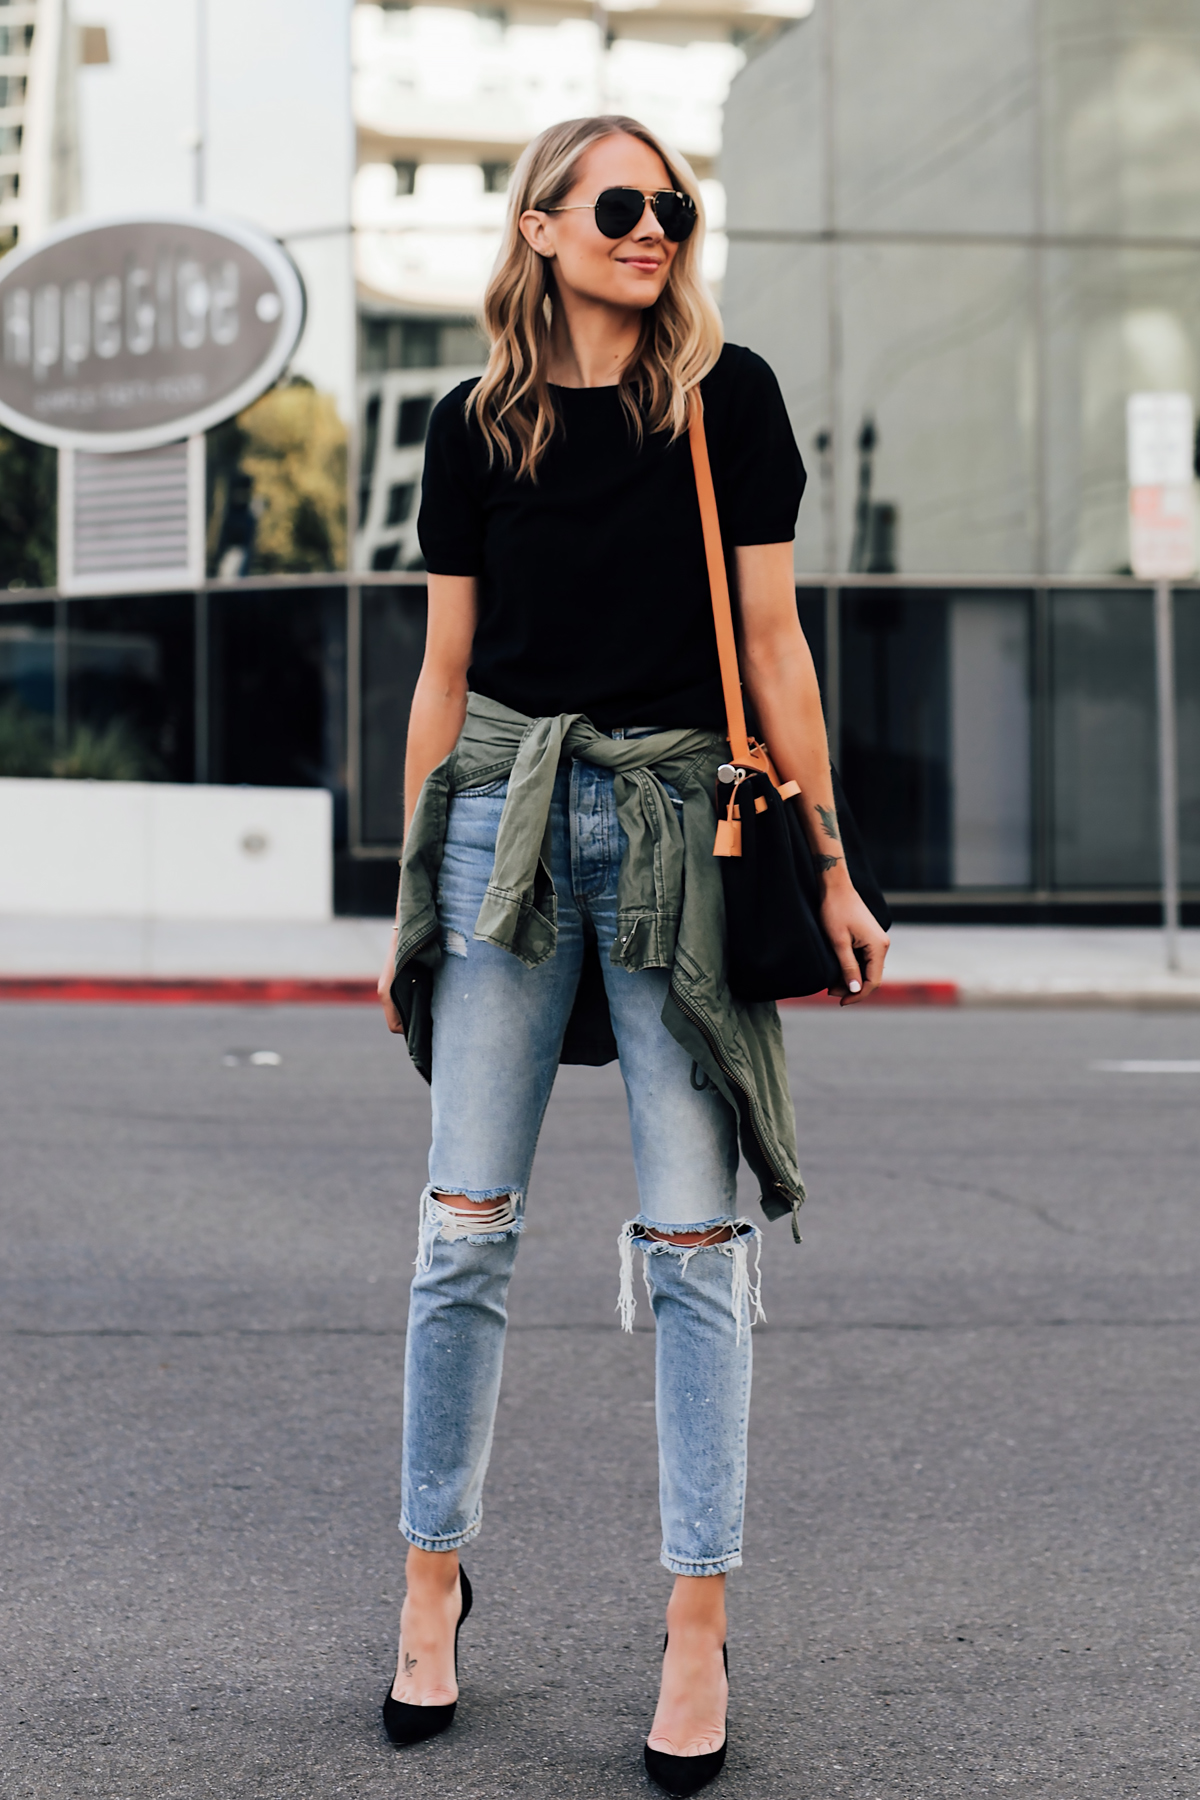 Blonde Woman Wearing Short Sleeve Black Top Denim Ripped Skinny Jeans Black Pumps Green Utility Jacket Fashion Jackson San Diego Fashion Blogger Street Style